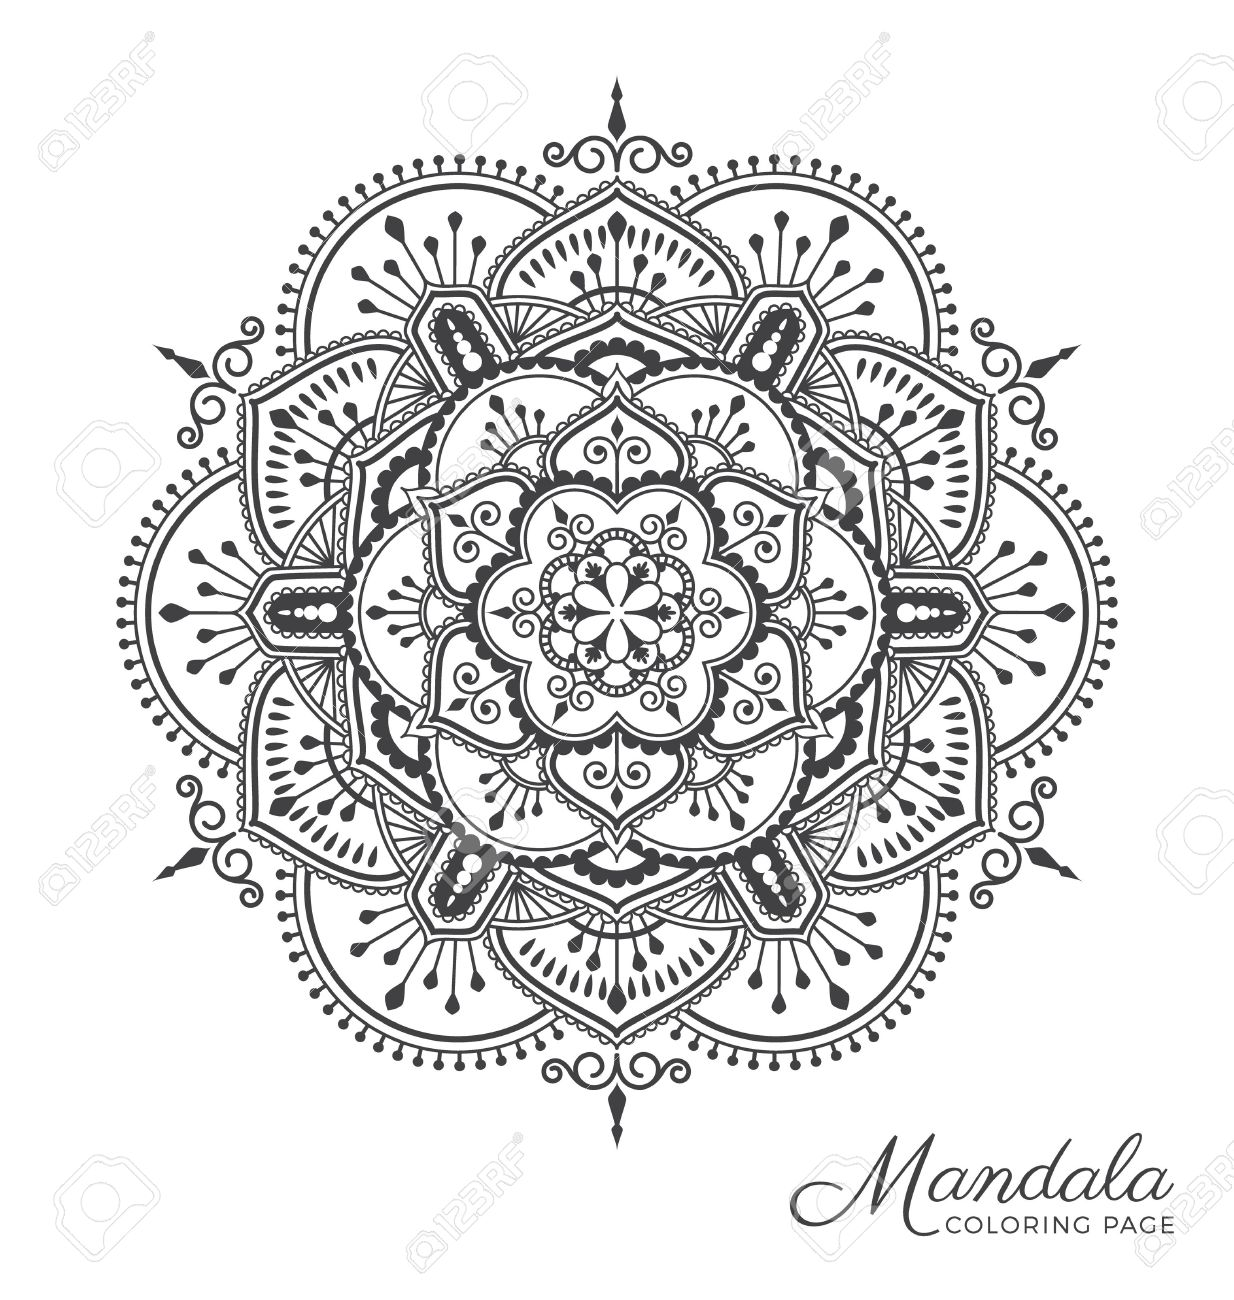 Tibetan Mandala Decorative Ornament Design For Adult Coloring Page Greeting Card Invitation Tattoo